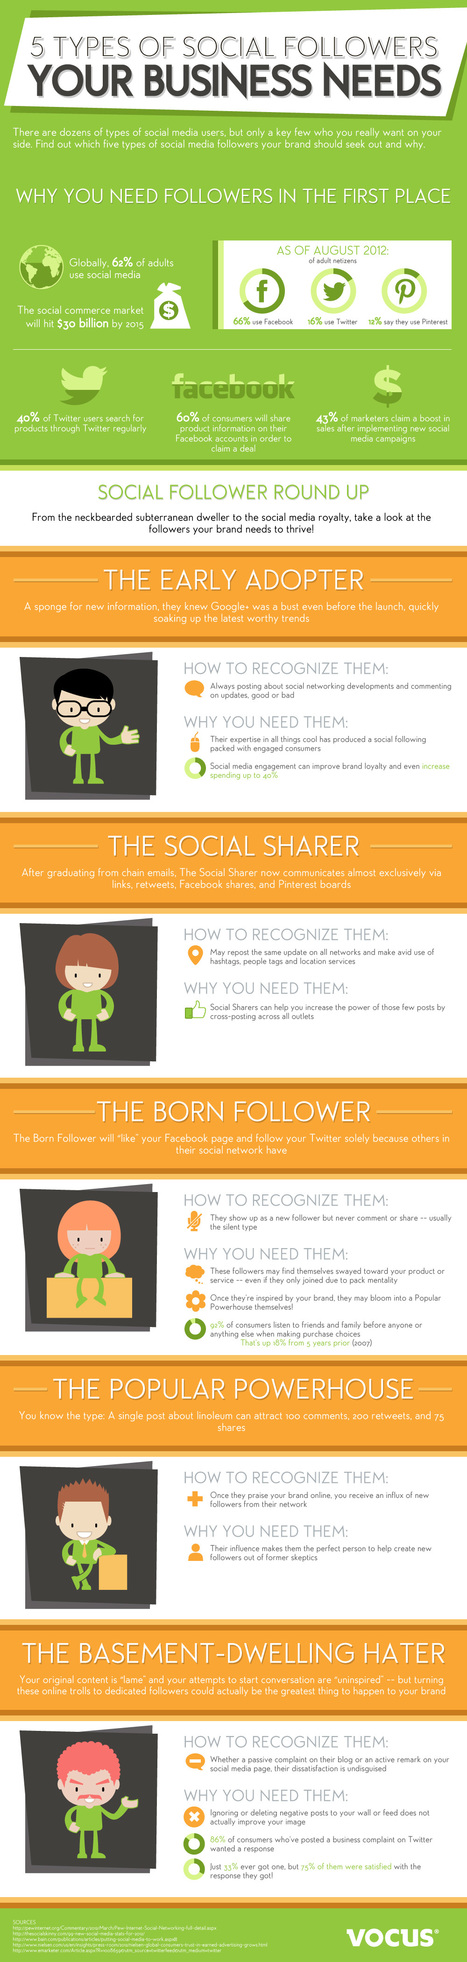 The 5 Types of Social Followers that Every Business Needs [INFOGRAPHIC] | MarketingHits | Scoop.it